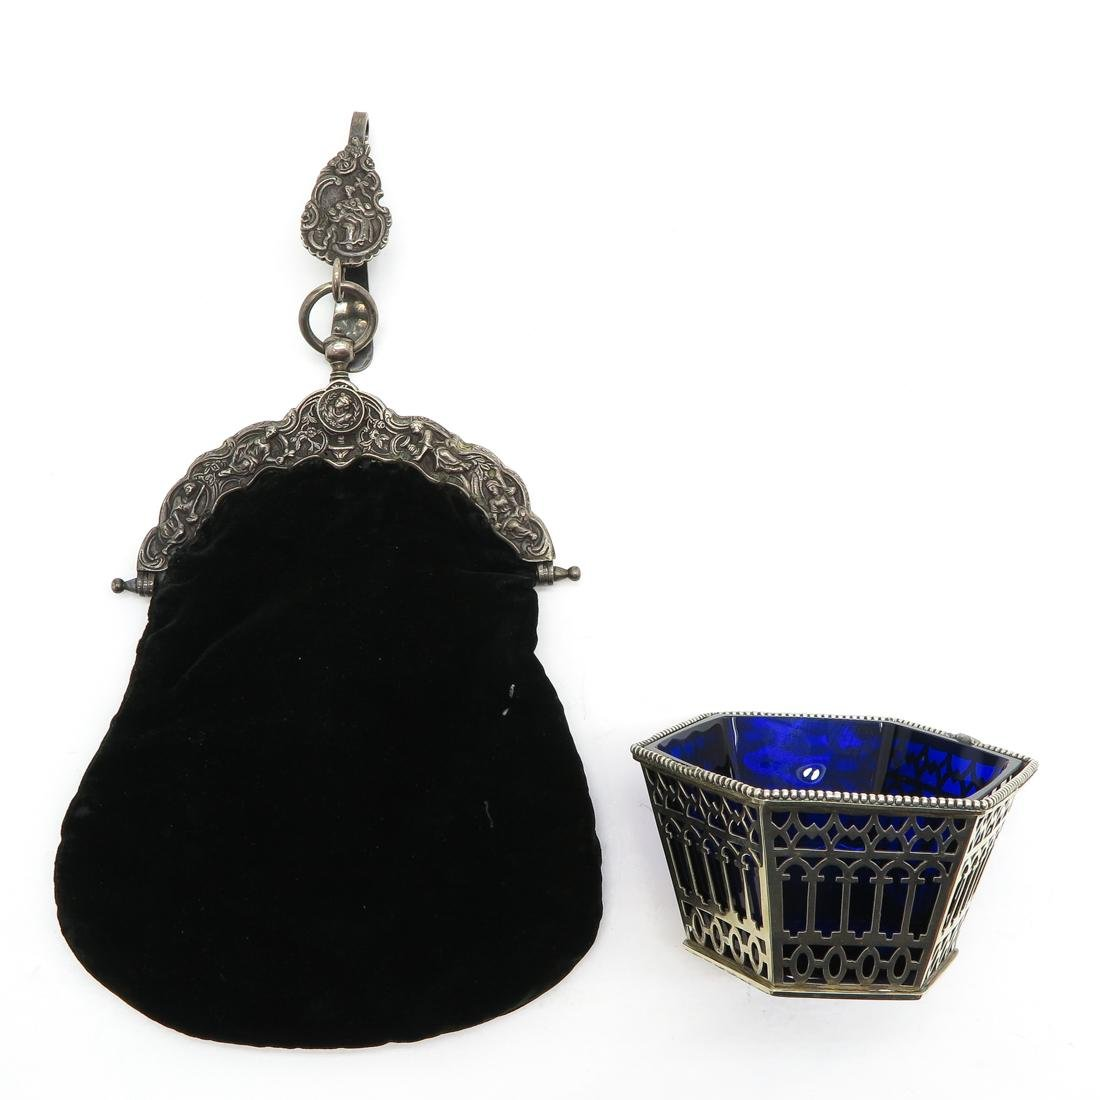 Silver Purse and Cobalt and Silver Bowl